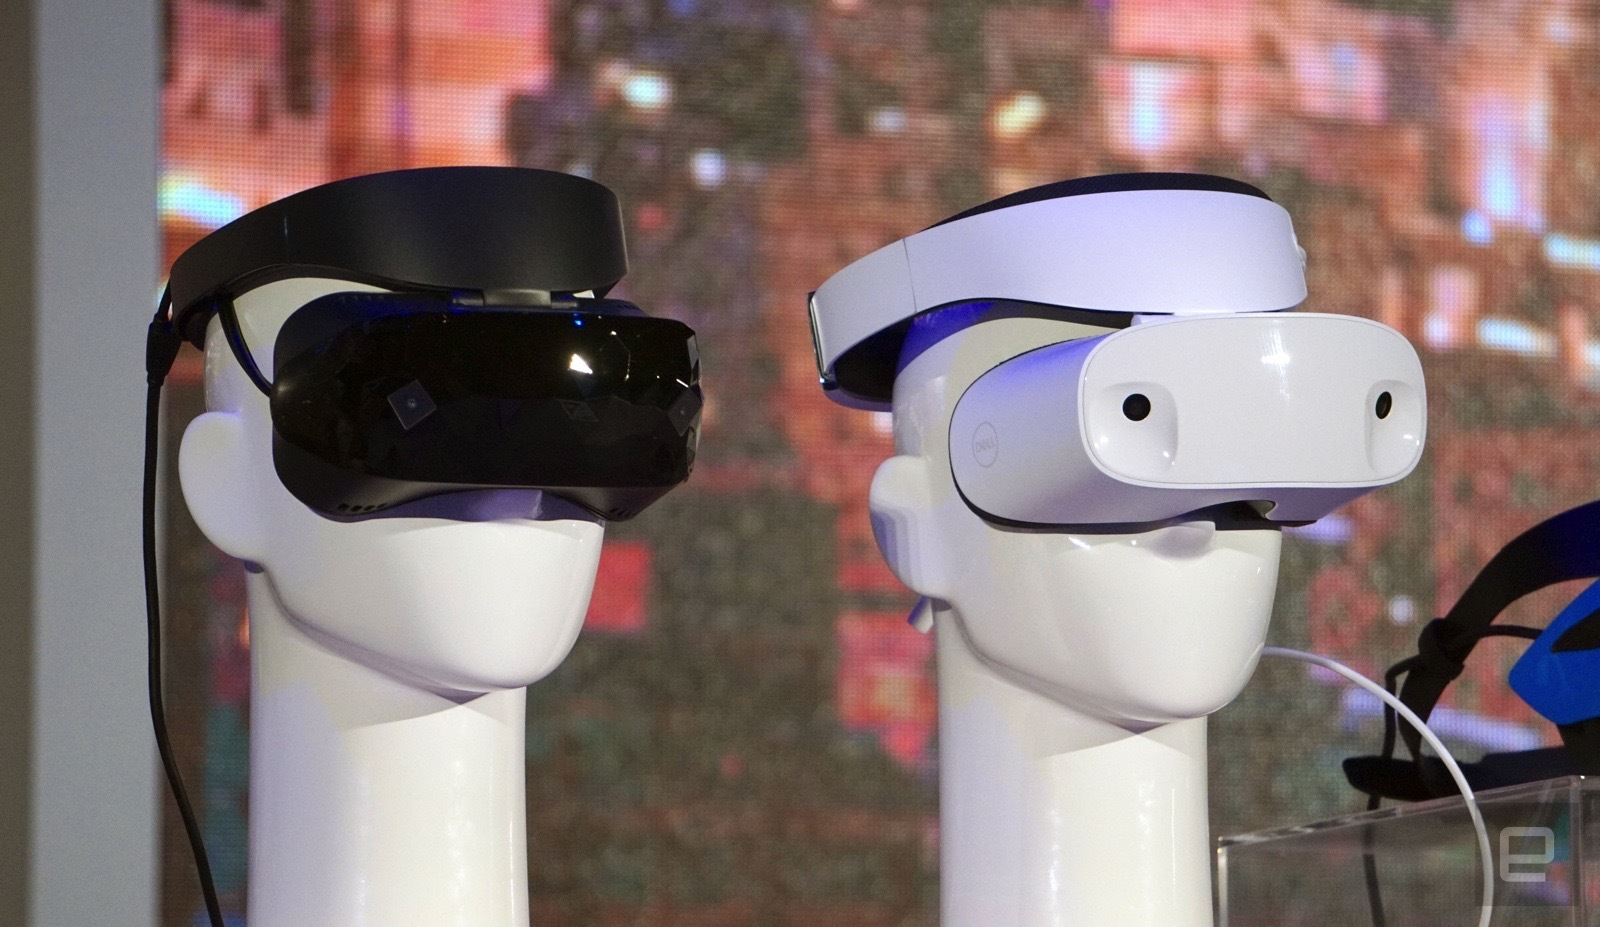 [Image source: www.engadget.com/2017/05/31/microsoft-asus-dell-windows-vr/#gallery=536070&slide=5053365&index=5]